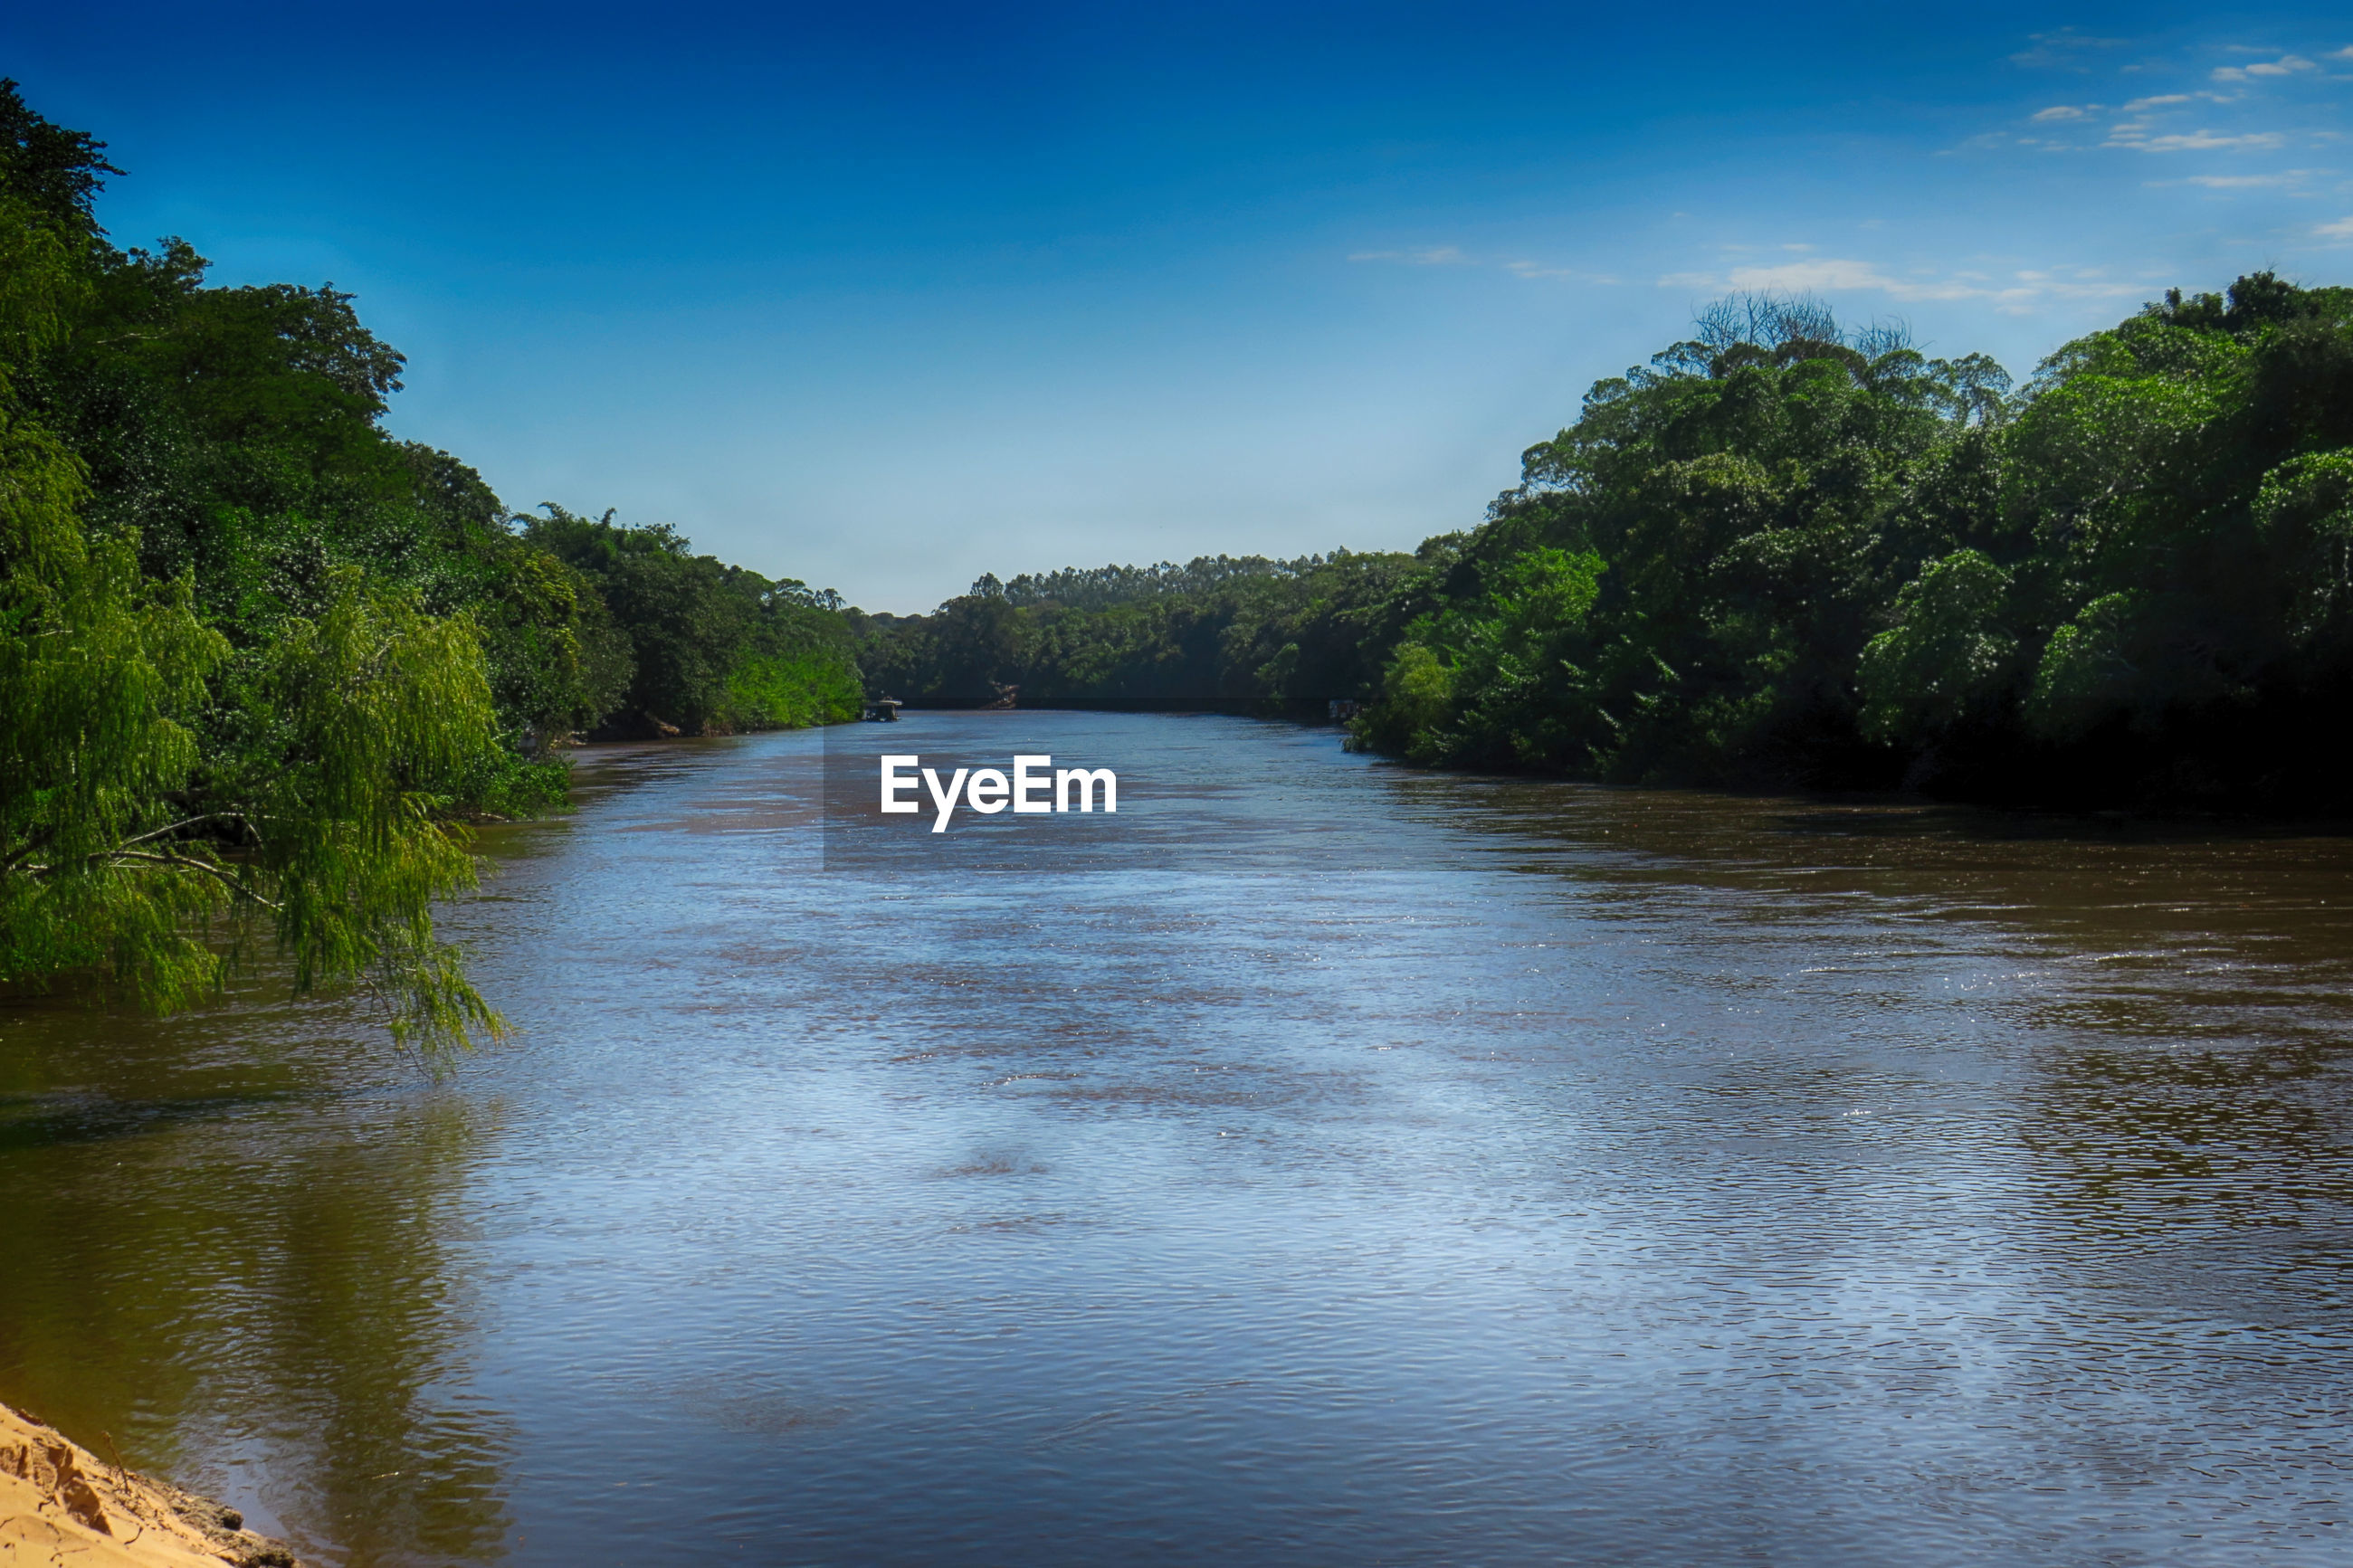 RIVER FLOWING AMIDST TREES AGAINST SKY